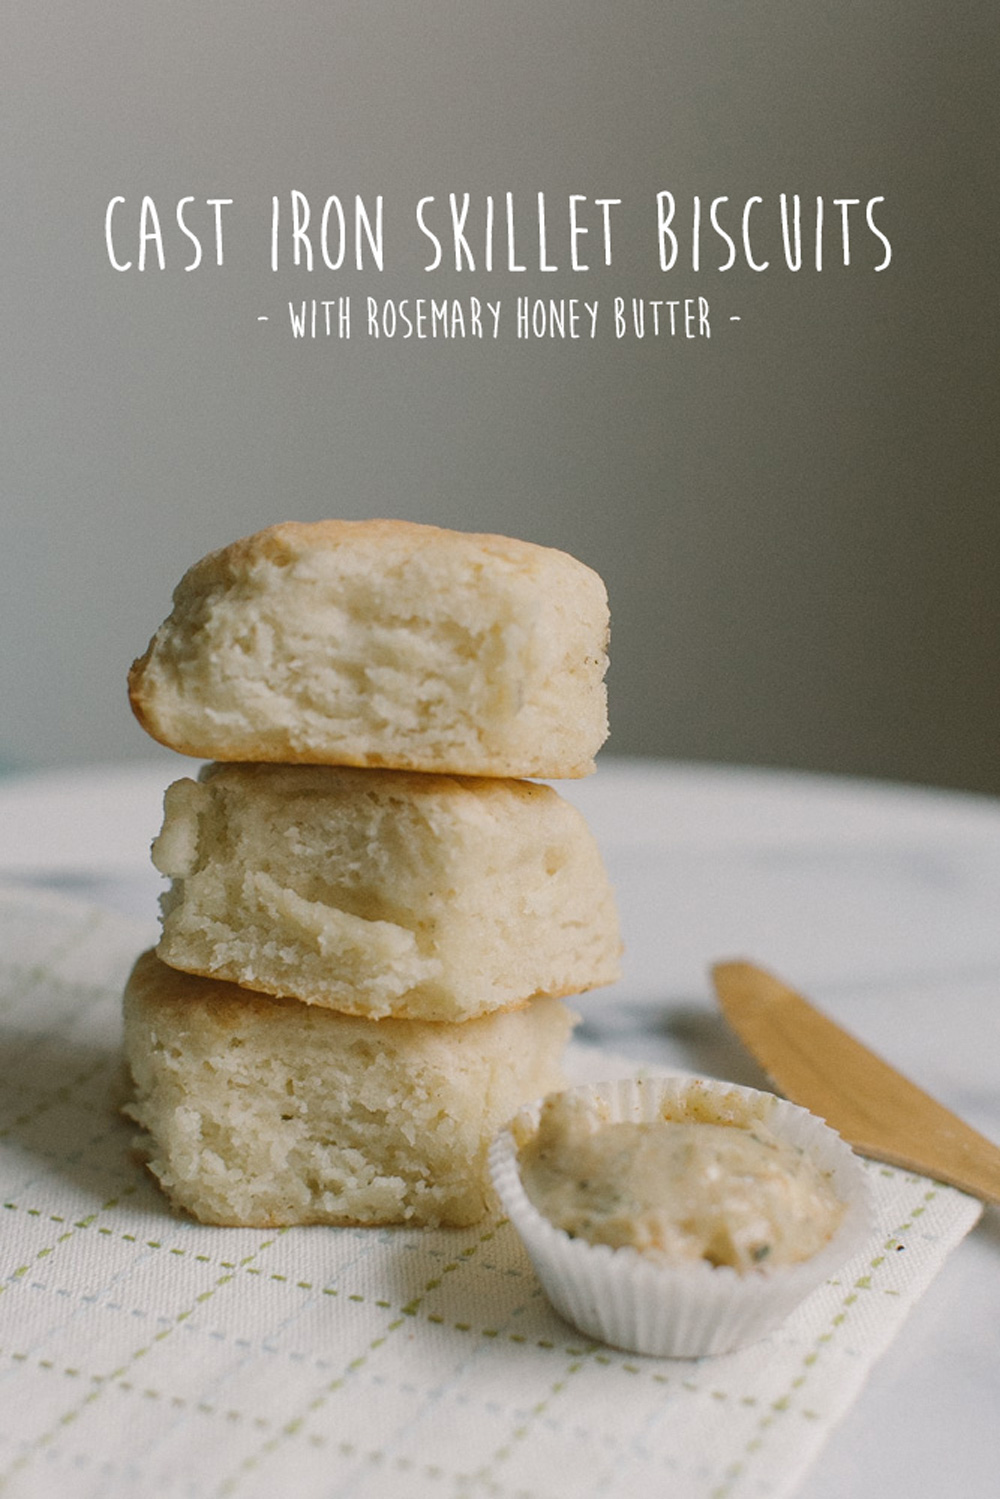 Cast Iron Skillet Biscuits | Becca Bakes (www.becca-bakes.com)